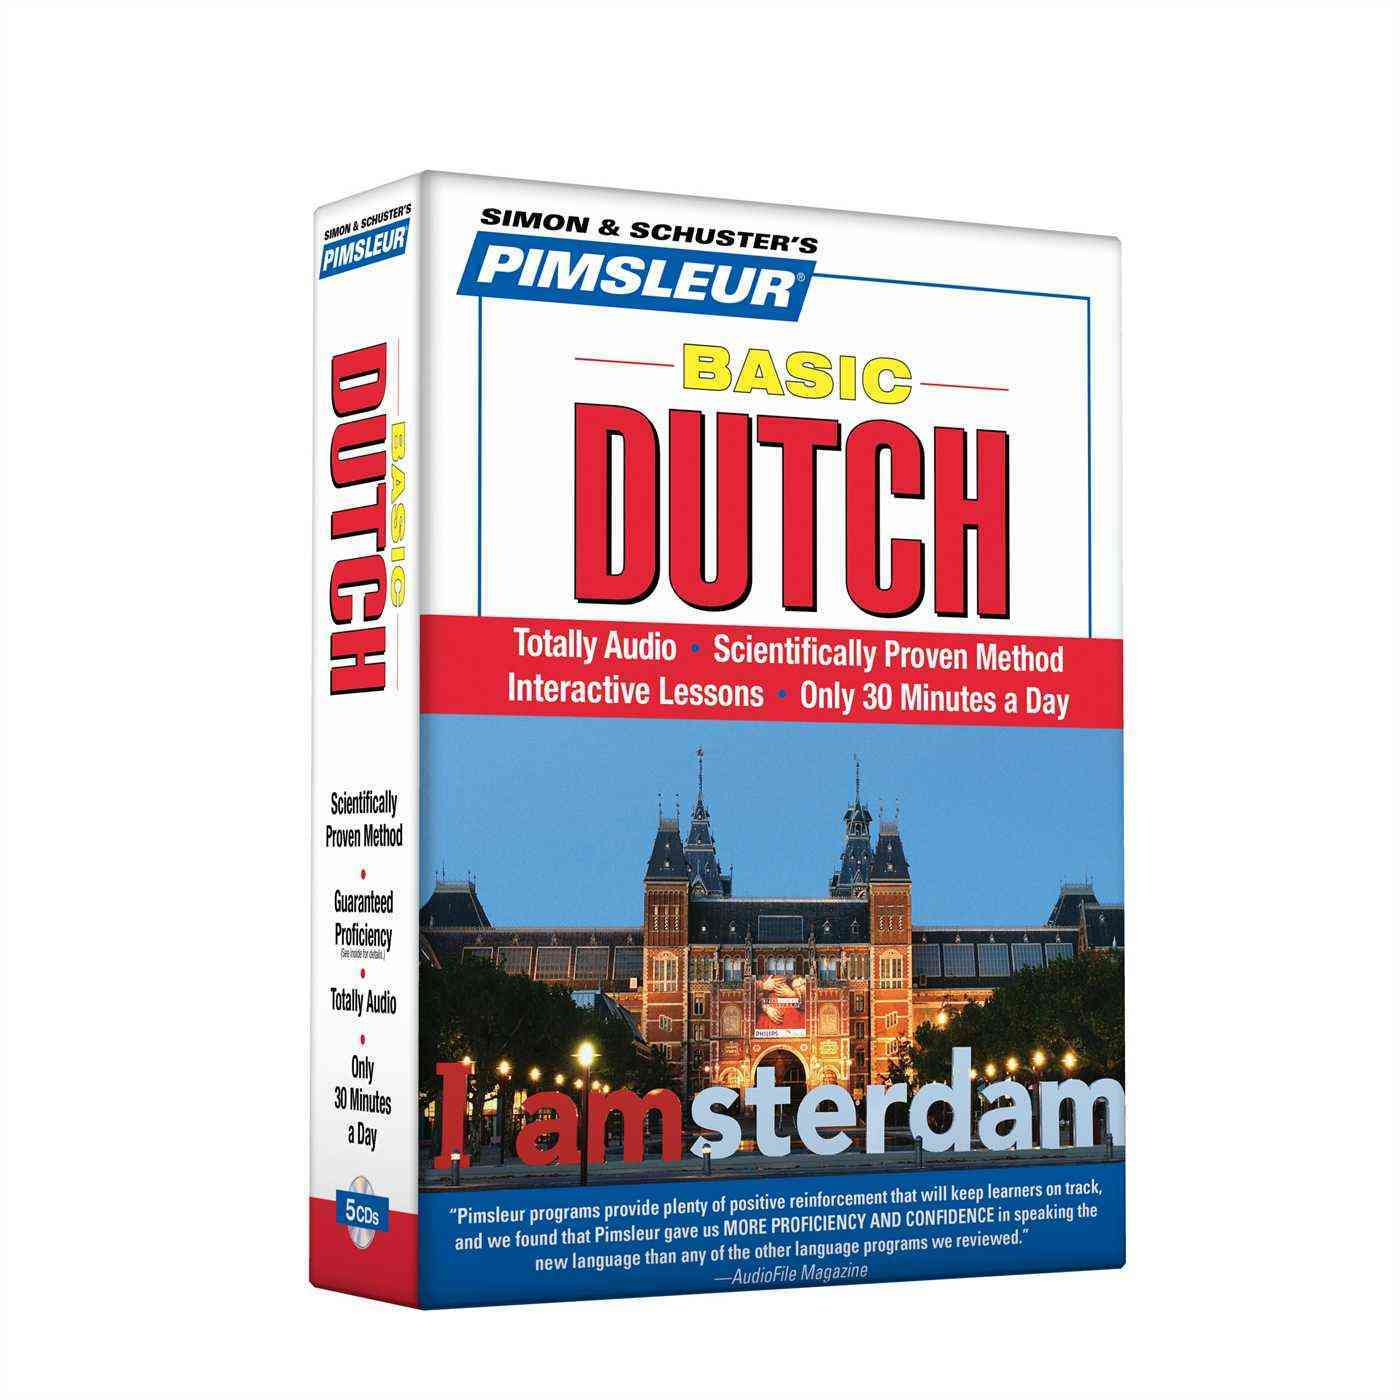 [CD] Pimsleur Basic Dutch By Pimsleur Language Programs